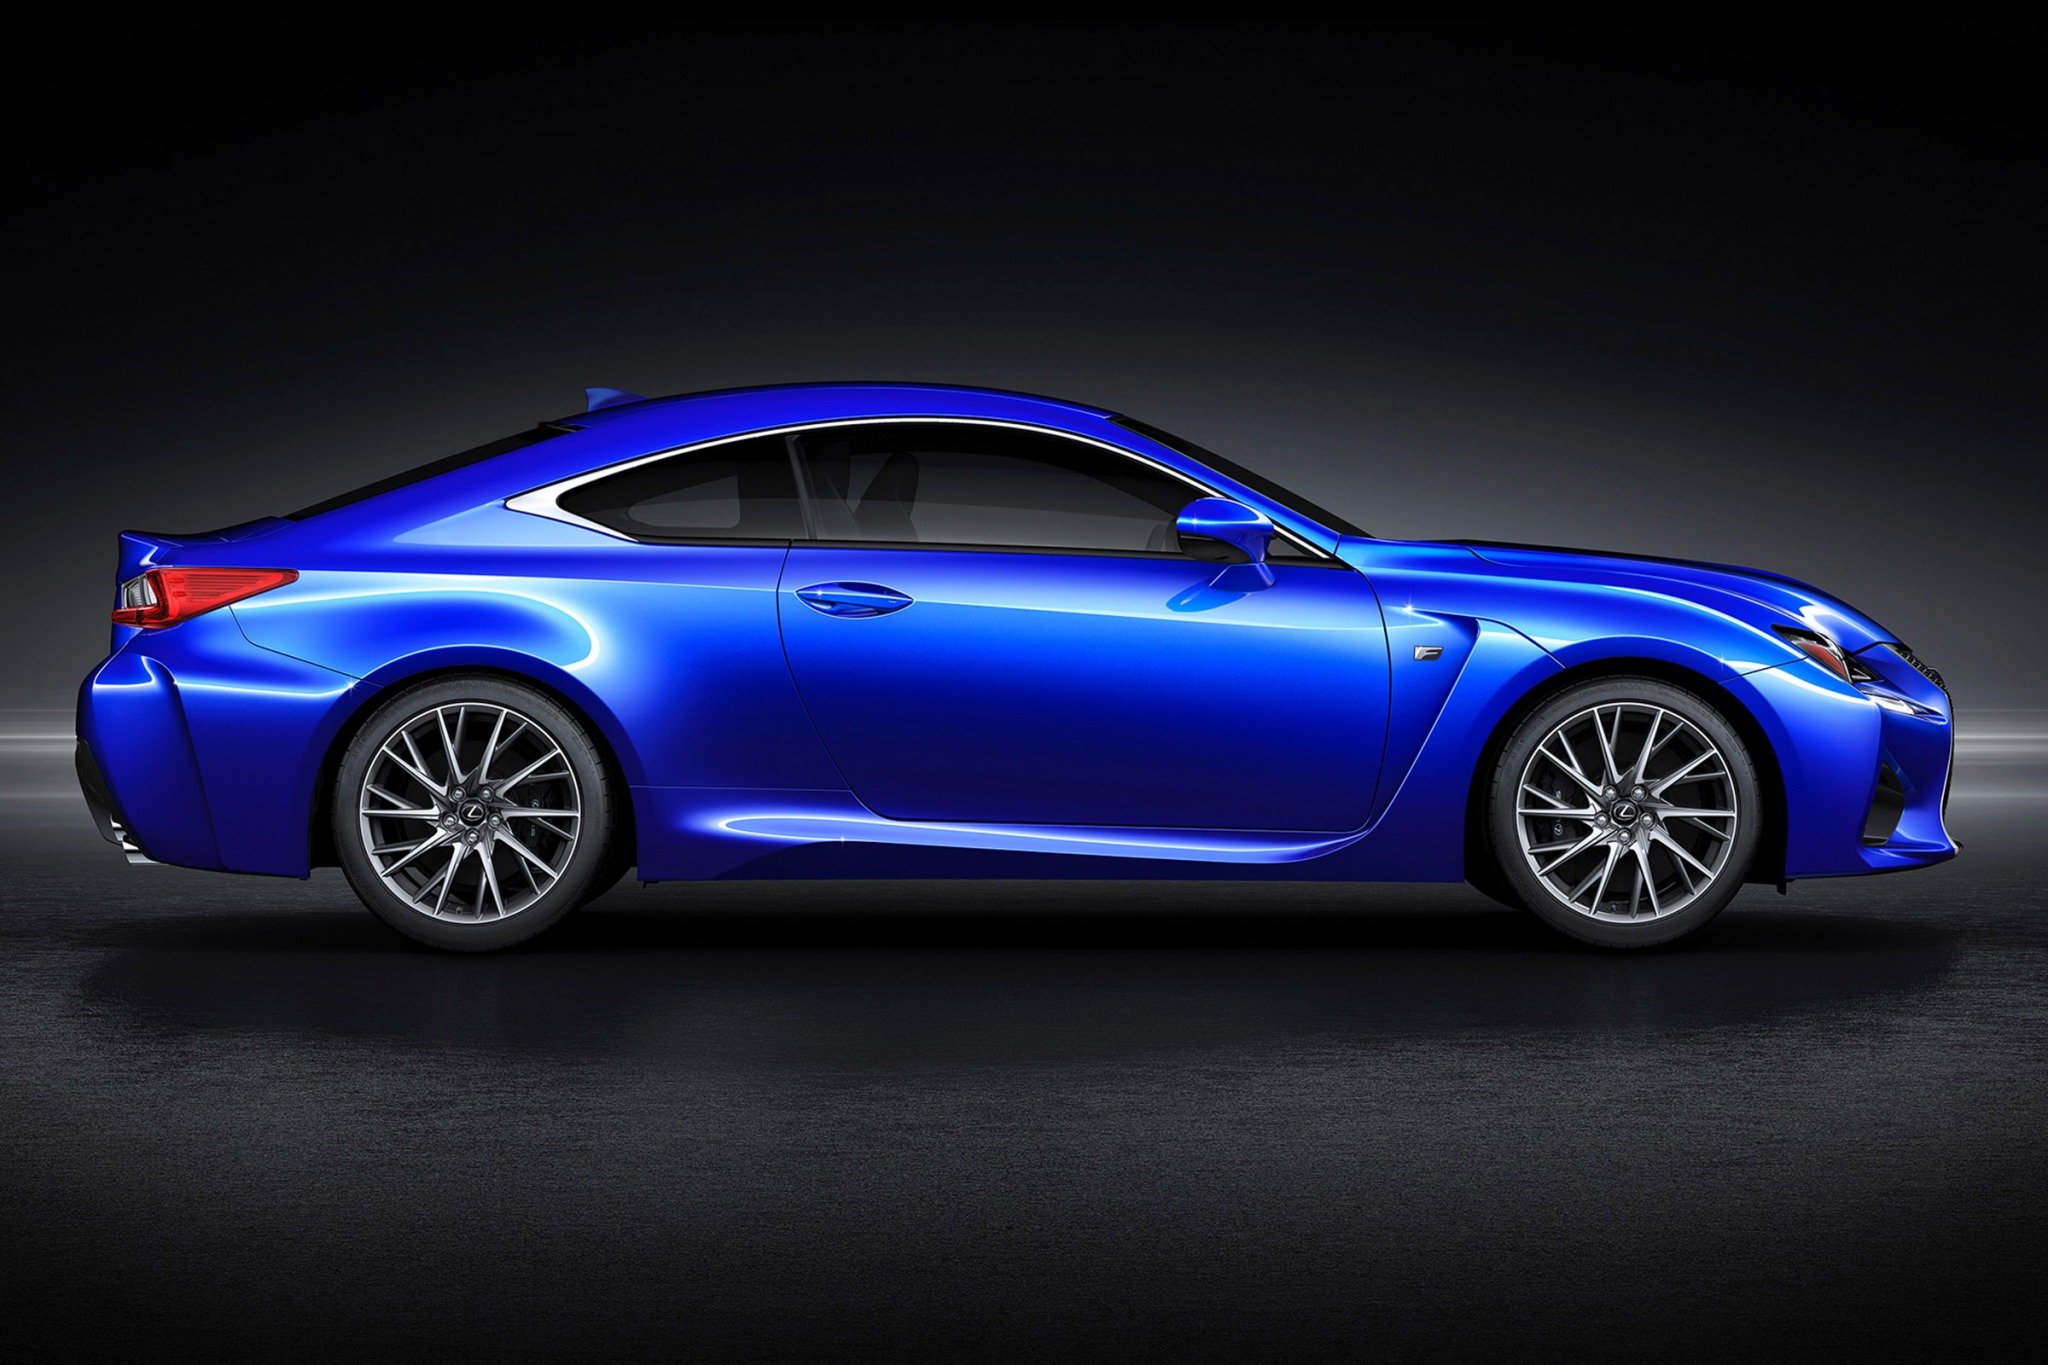 2015 Lexus RC F Coupe Ext exterior #6